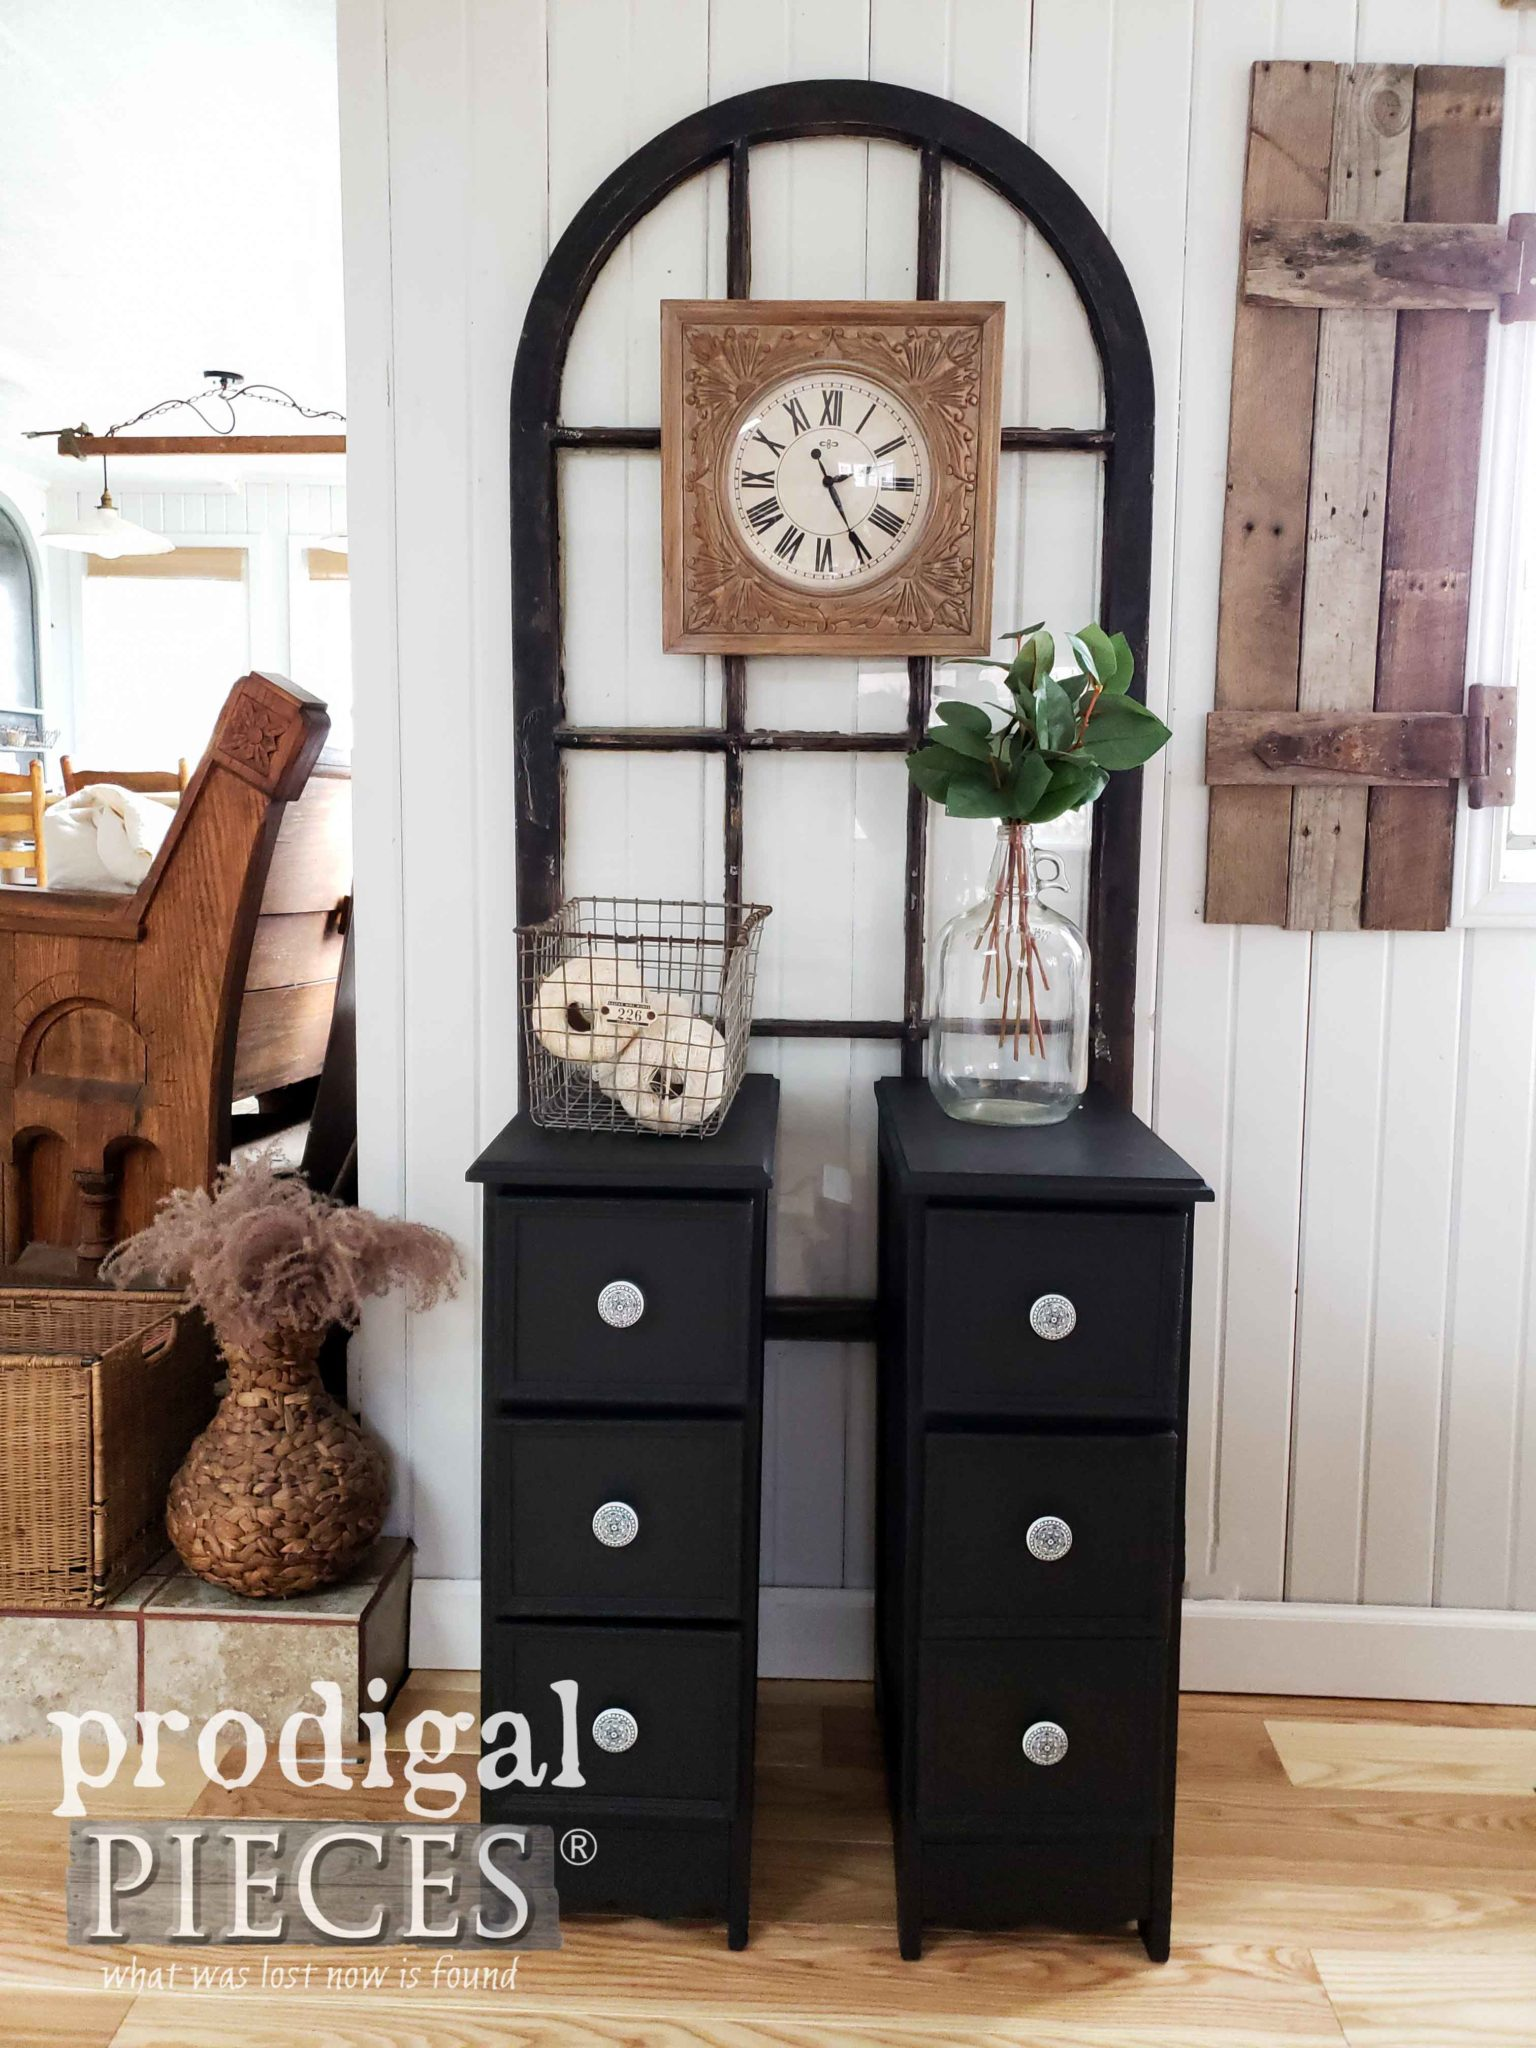 Modern Farmhouse Style Nightstands Made from Upcycled Desk | Video Tutorial by Larissa of Prodigal Pieces | prodigalpieces.com #prodigalpieces #diy #furniture #home #videos #tutorial #homedecor #homedecorideas #farmhouse